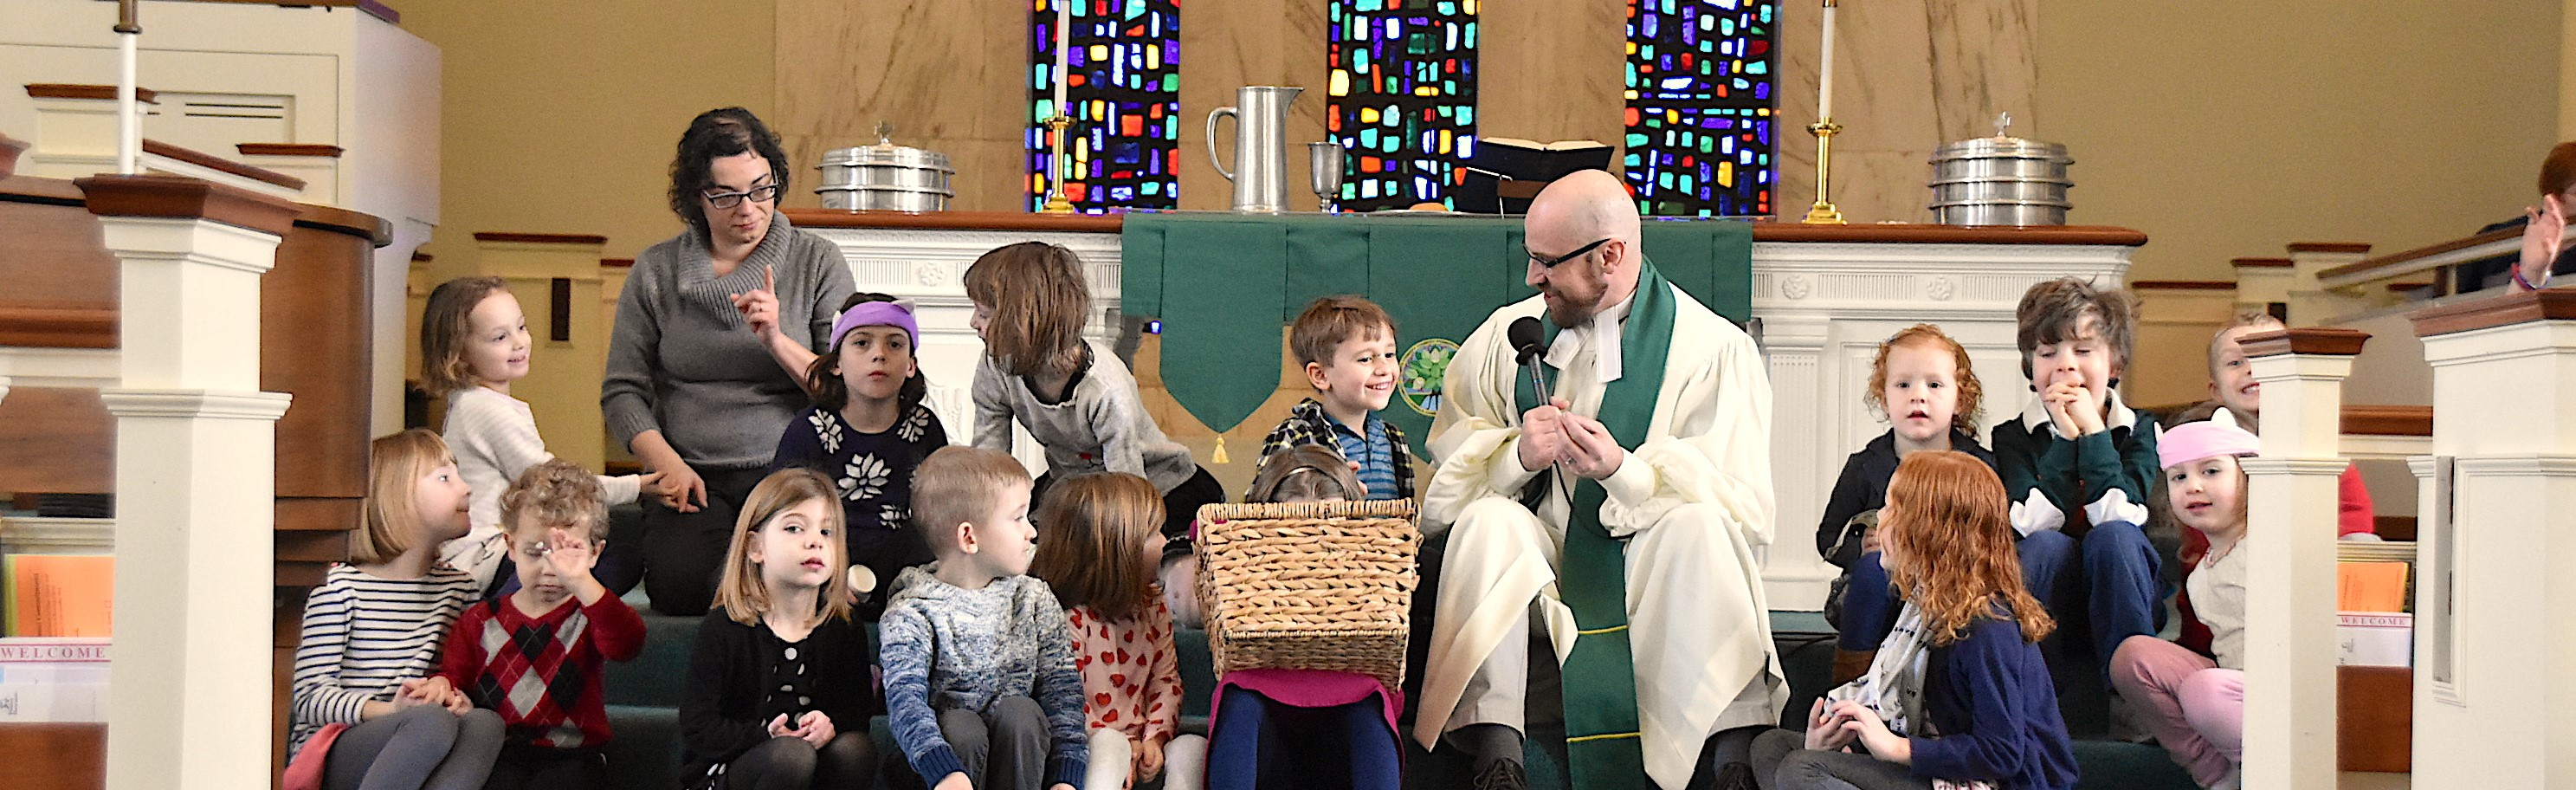 Childrens Sermon 2019 Cropped For Header